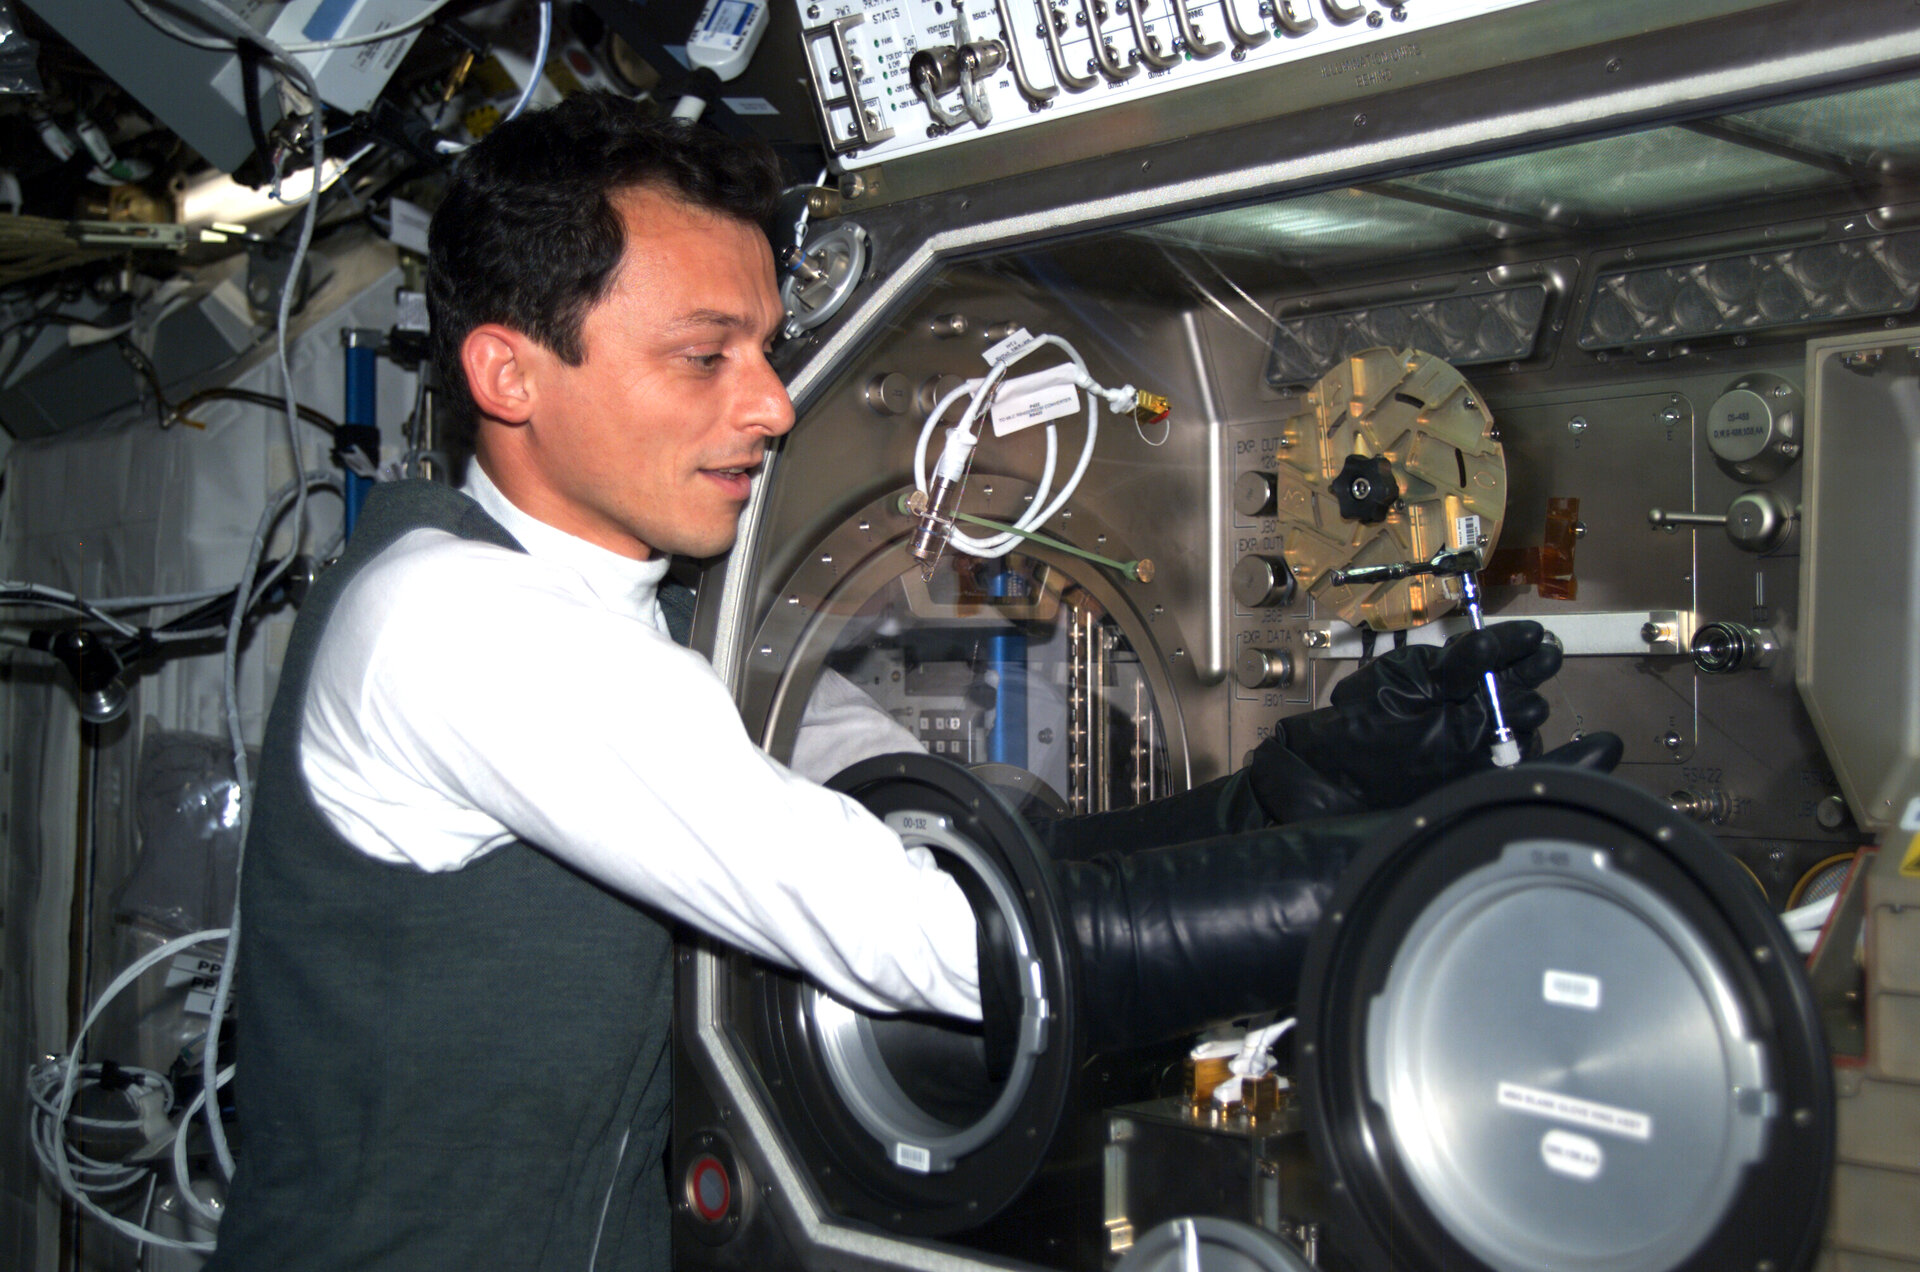 ESA astronaut Pedro Duque with Microgravity Science Glovebox in 2003